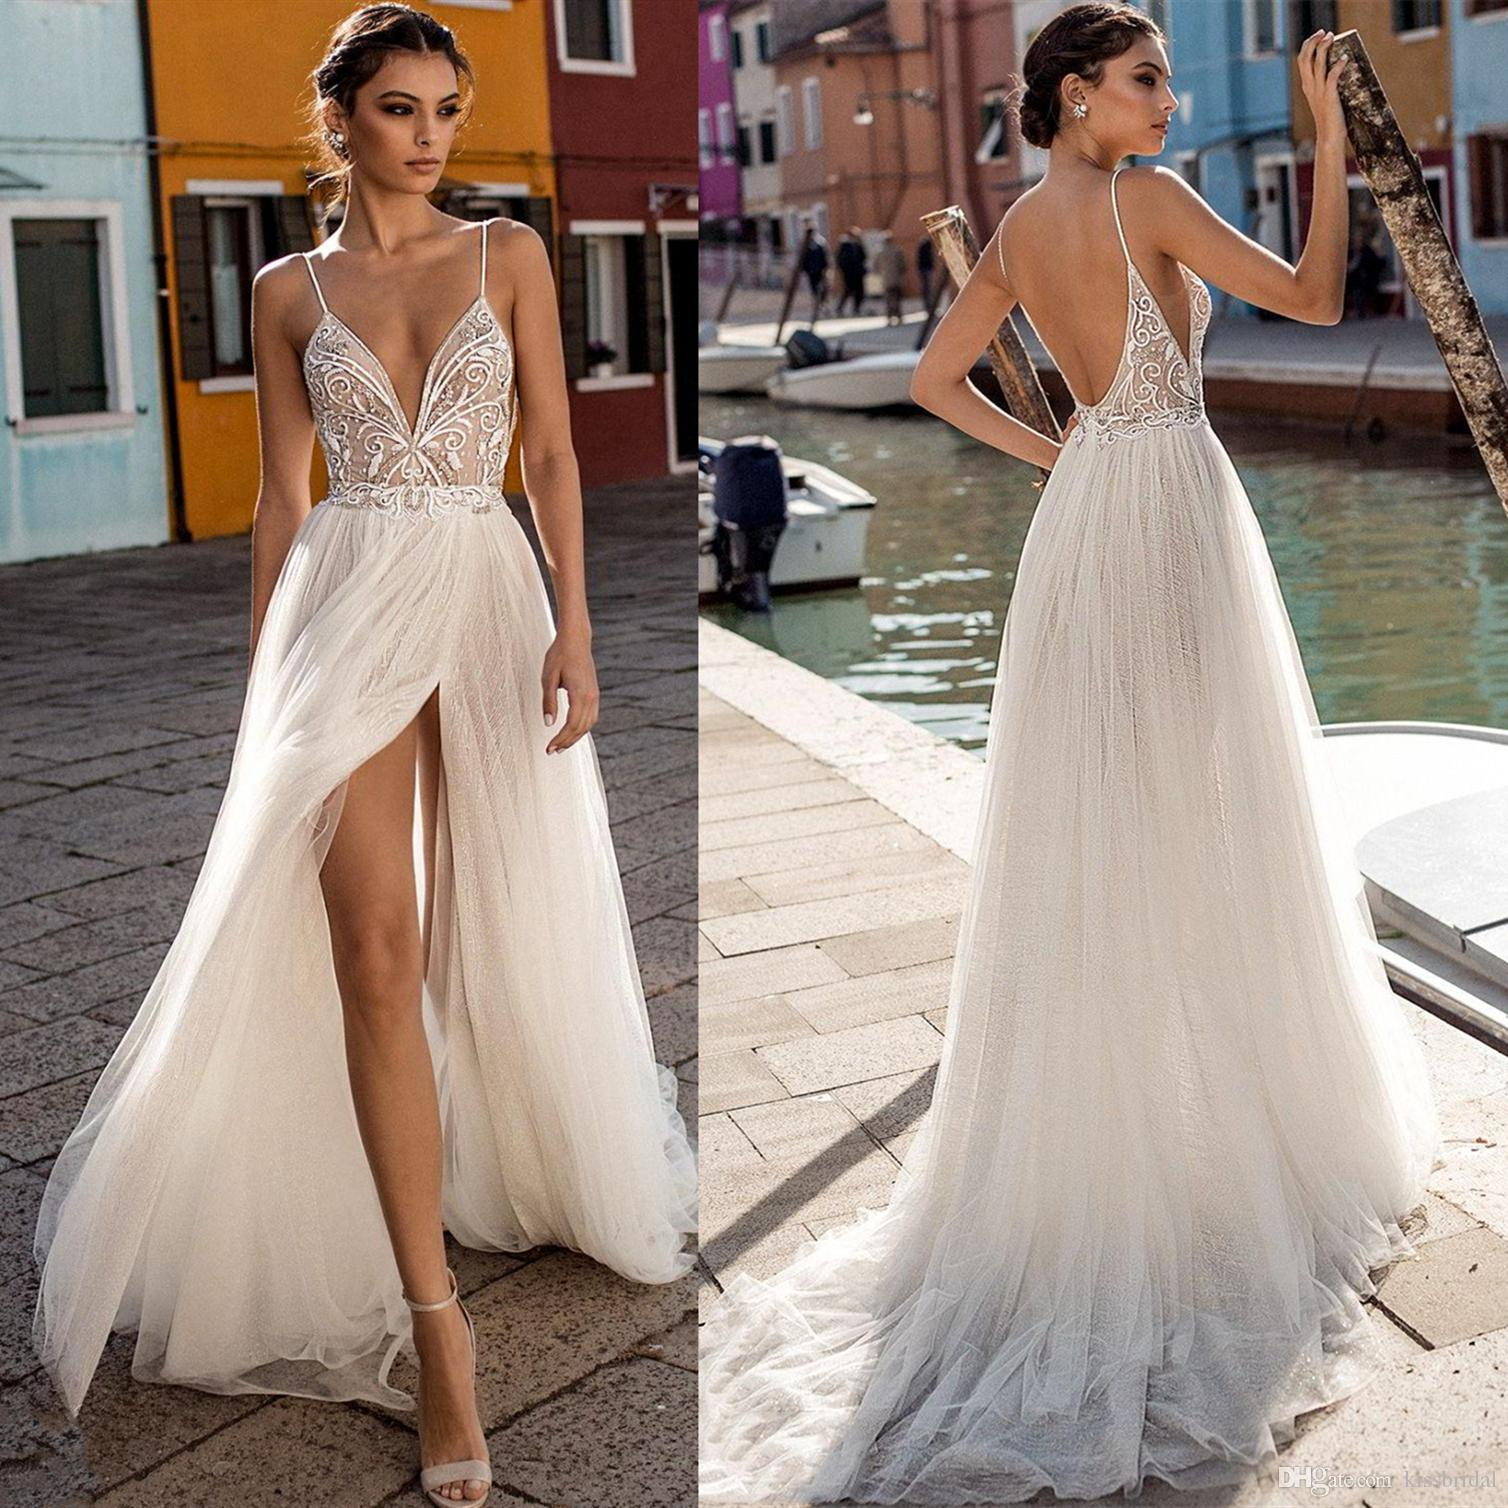 Sexy Backless Wedding Dresses with Spaghetti Straps 2020 New Fashion A Line V Neck Split Tulle Wedding Dress Appliques Bridal Gowns